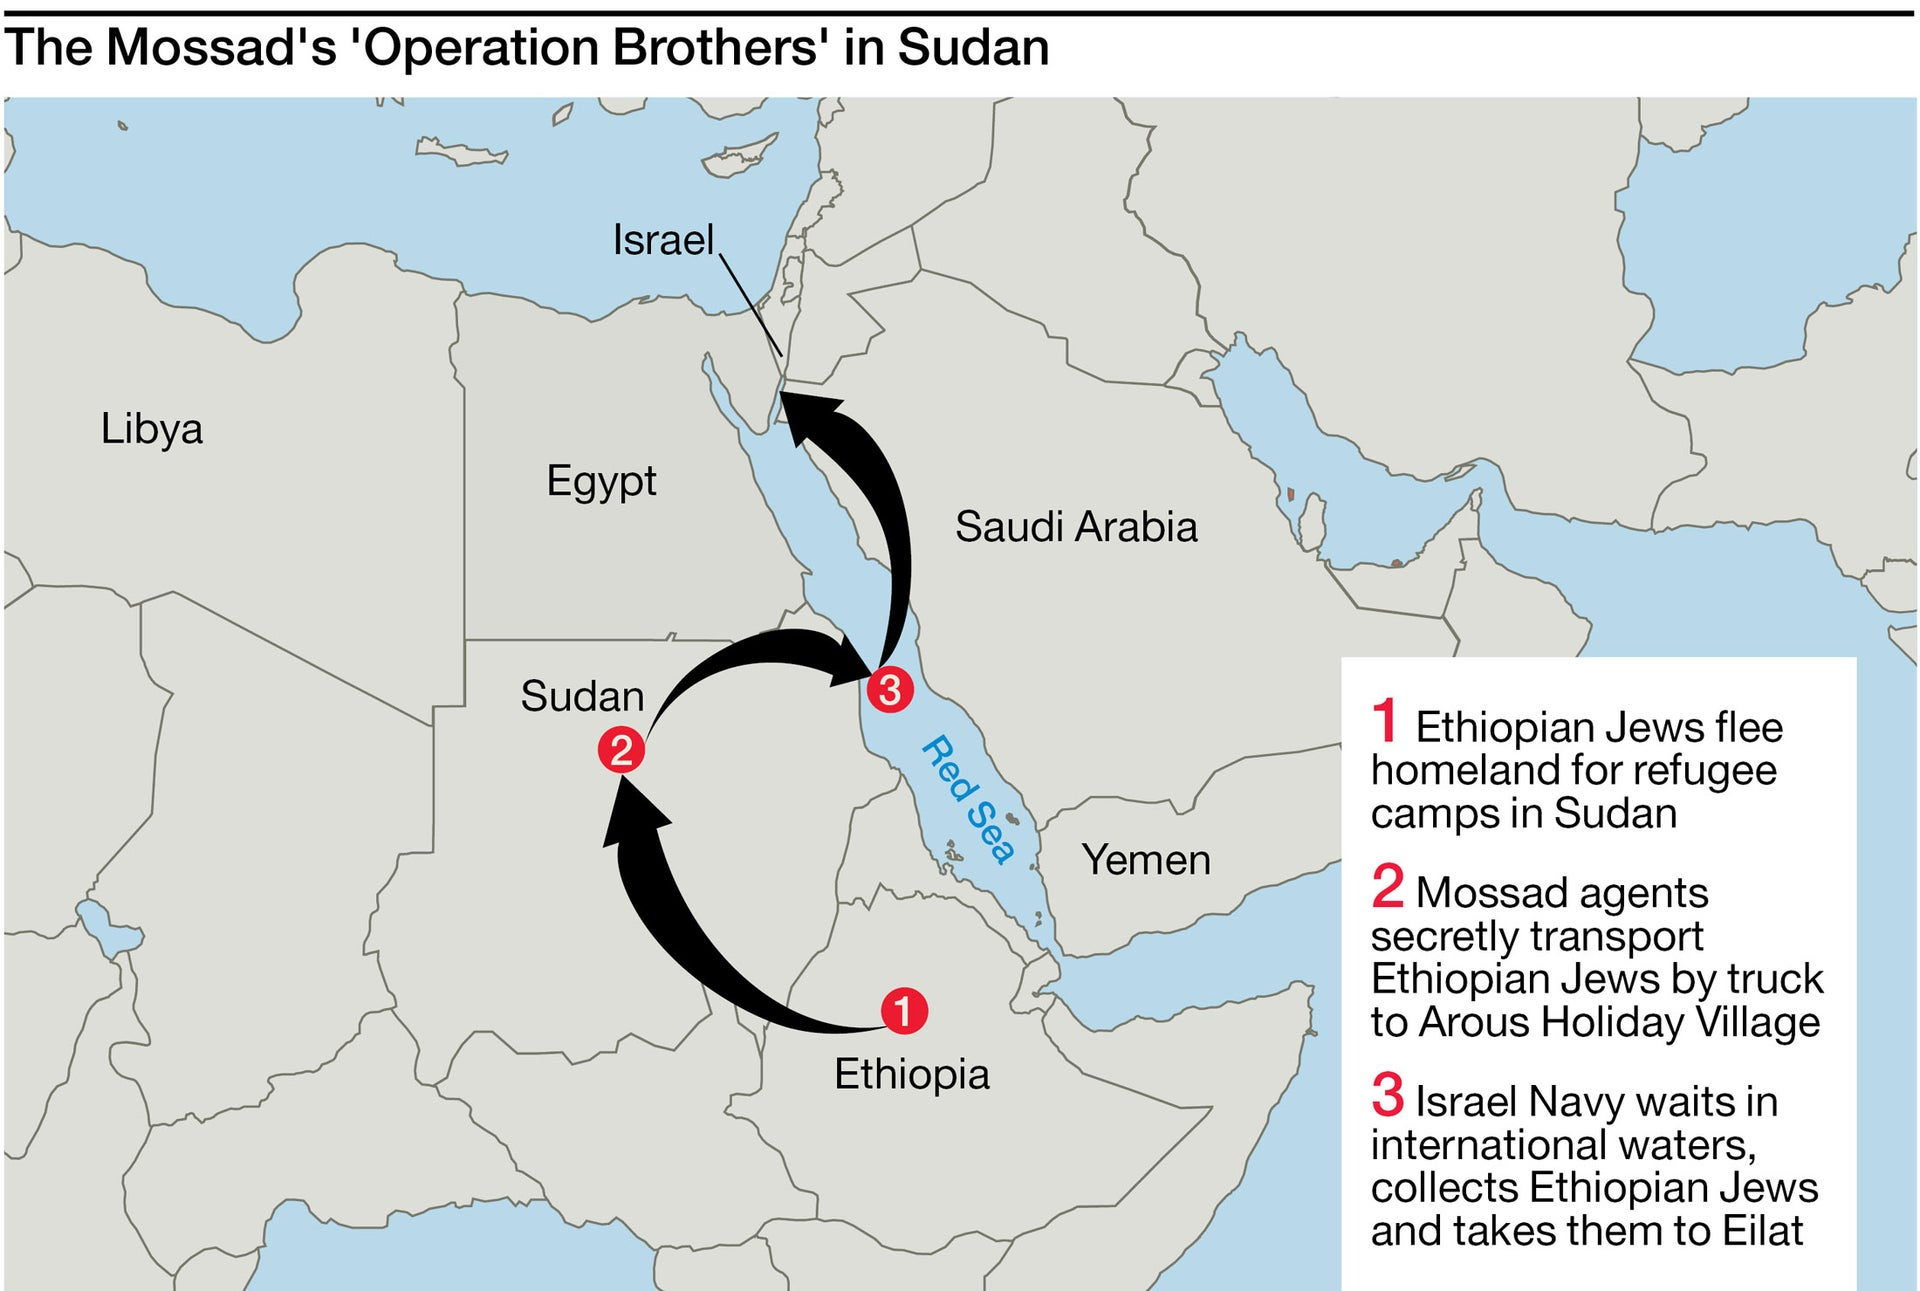 Map showing the Mossad's 'Operation Brothers' in Sudan in the 1980s.